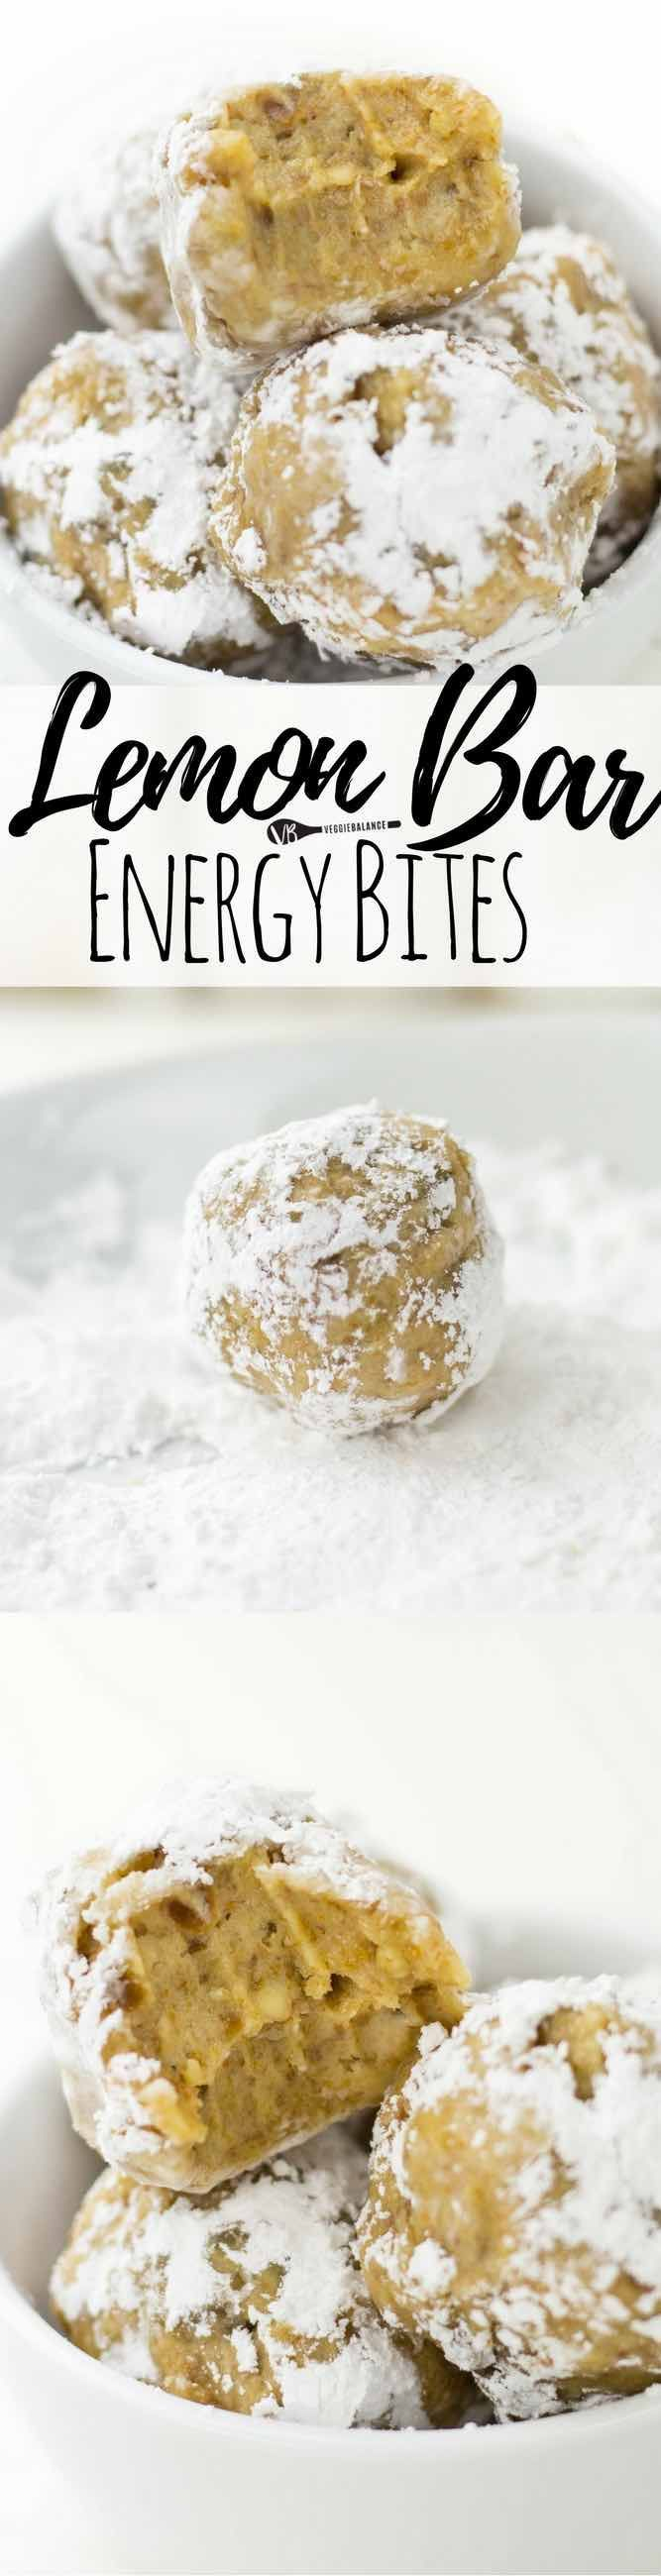 Healthy Lemon Bar Bites are everything you want in a Lemon Bar with a healthy twist. All you need are 5 ingredients and a quick whirl in the food processor. Roll them into a little powdered sugar and the perfect flavor profile is created. (Gluten Free, Dairy Free, Vegan)